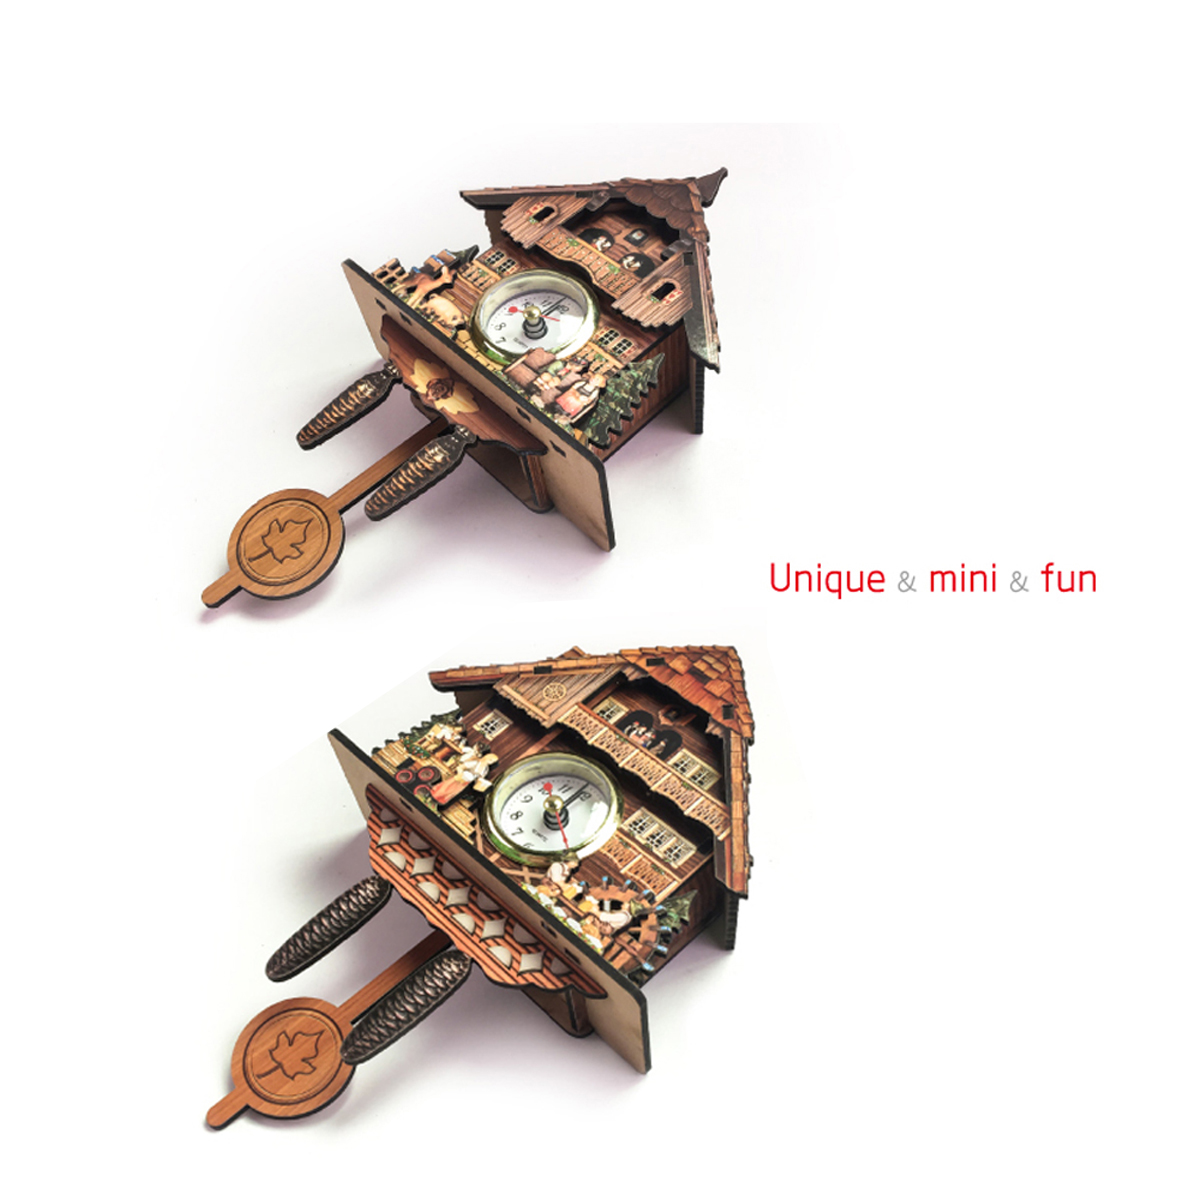 Cuckoo Clock Mount Wooden Wall Clock Analog Auto Swinging Pendulum Home Decorations